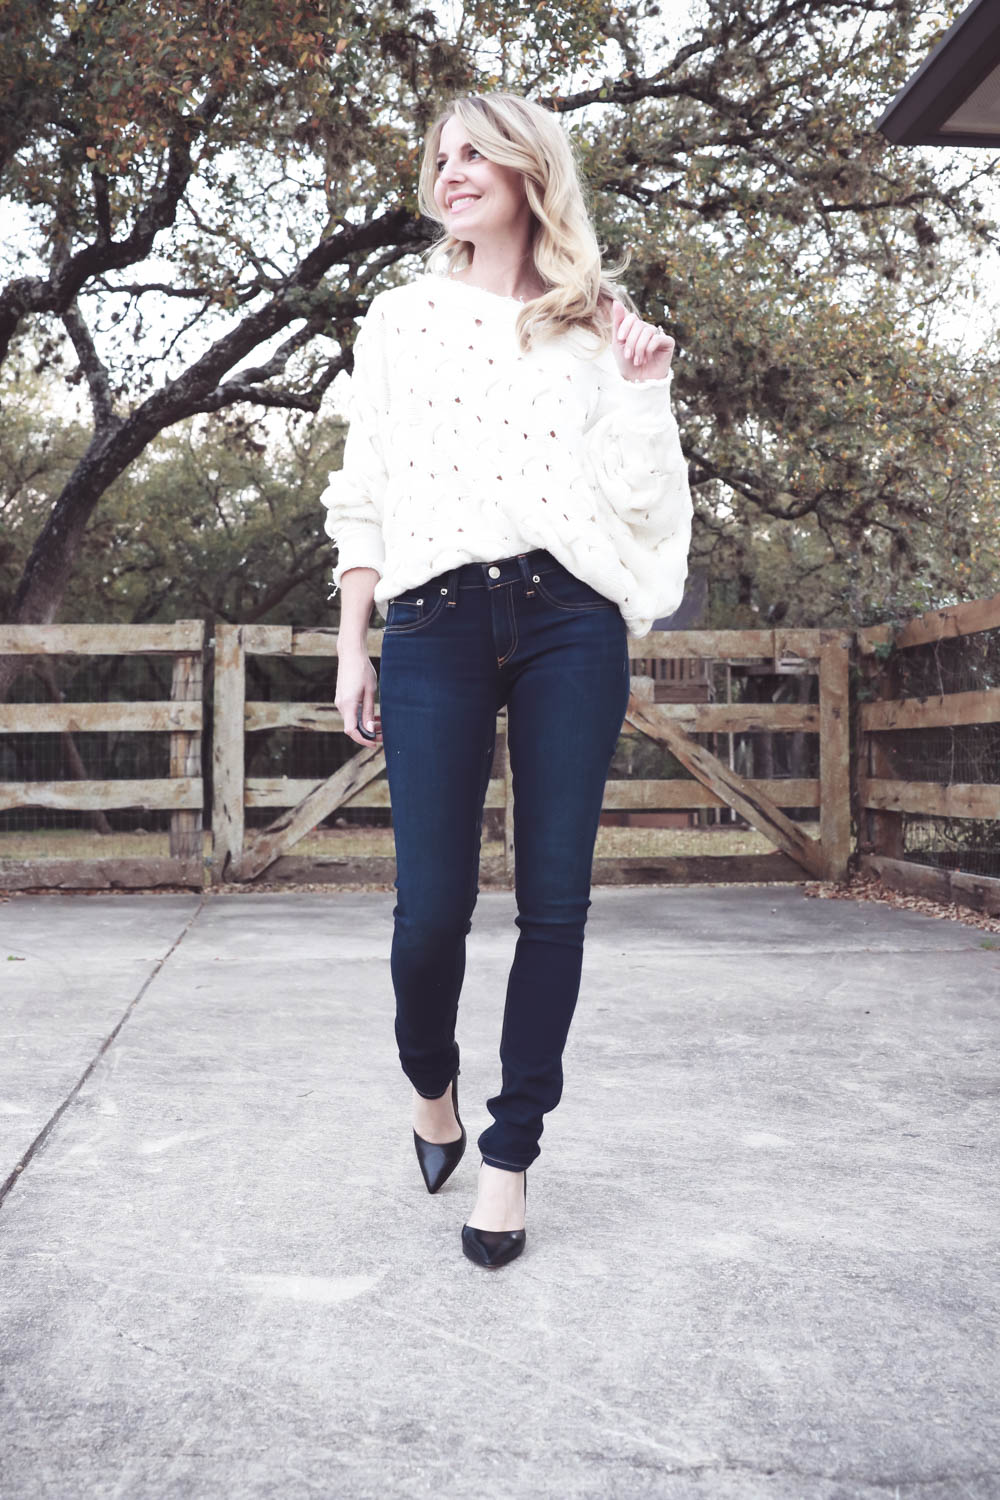 Spring wardrobe basics with erin busbee of busbeestyle and nordstrom featuring a pair of dark wash skinny jeans by Rag and bone from nordstrom